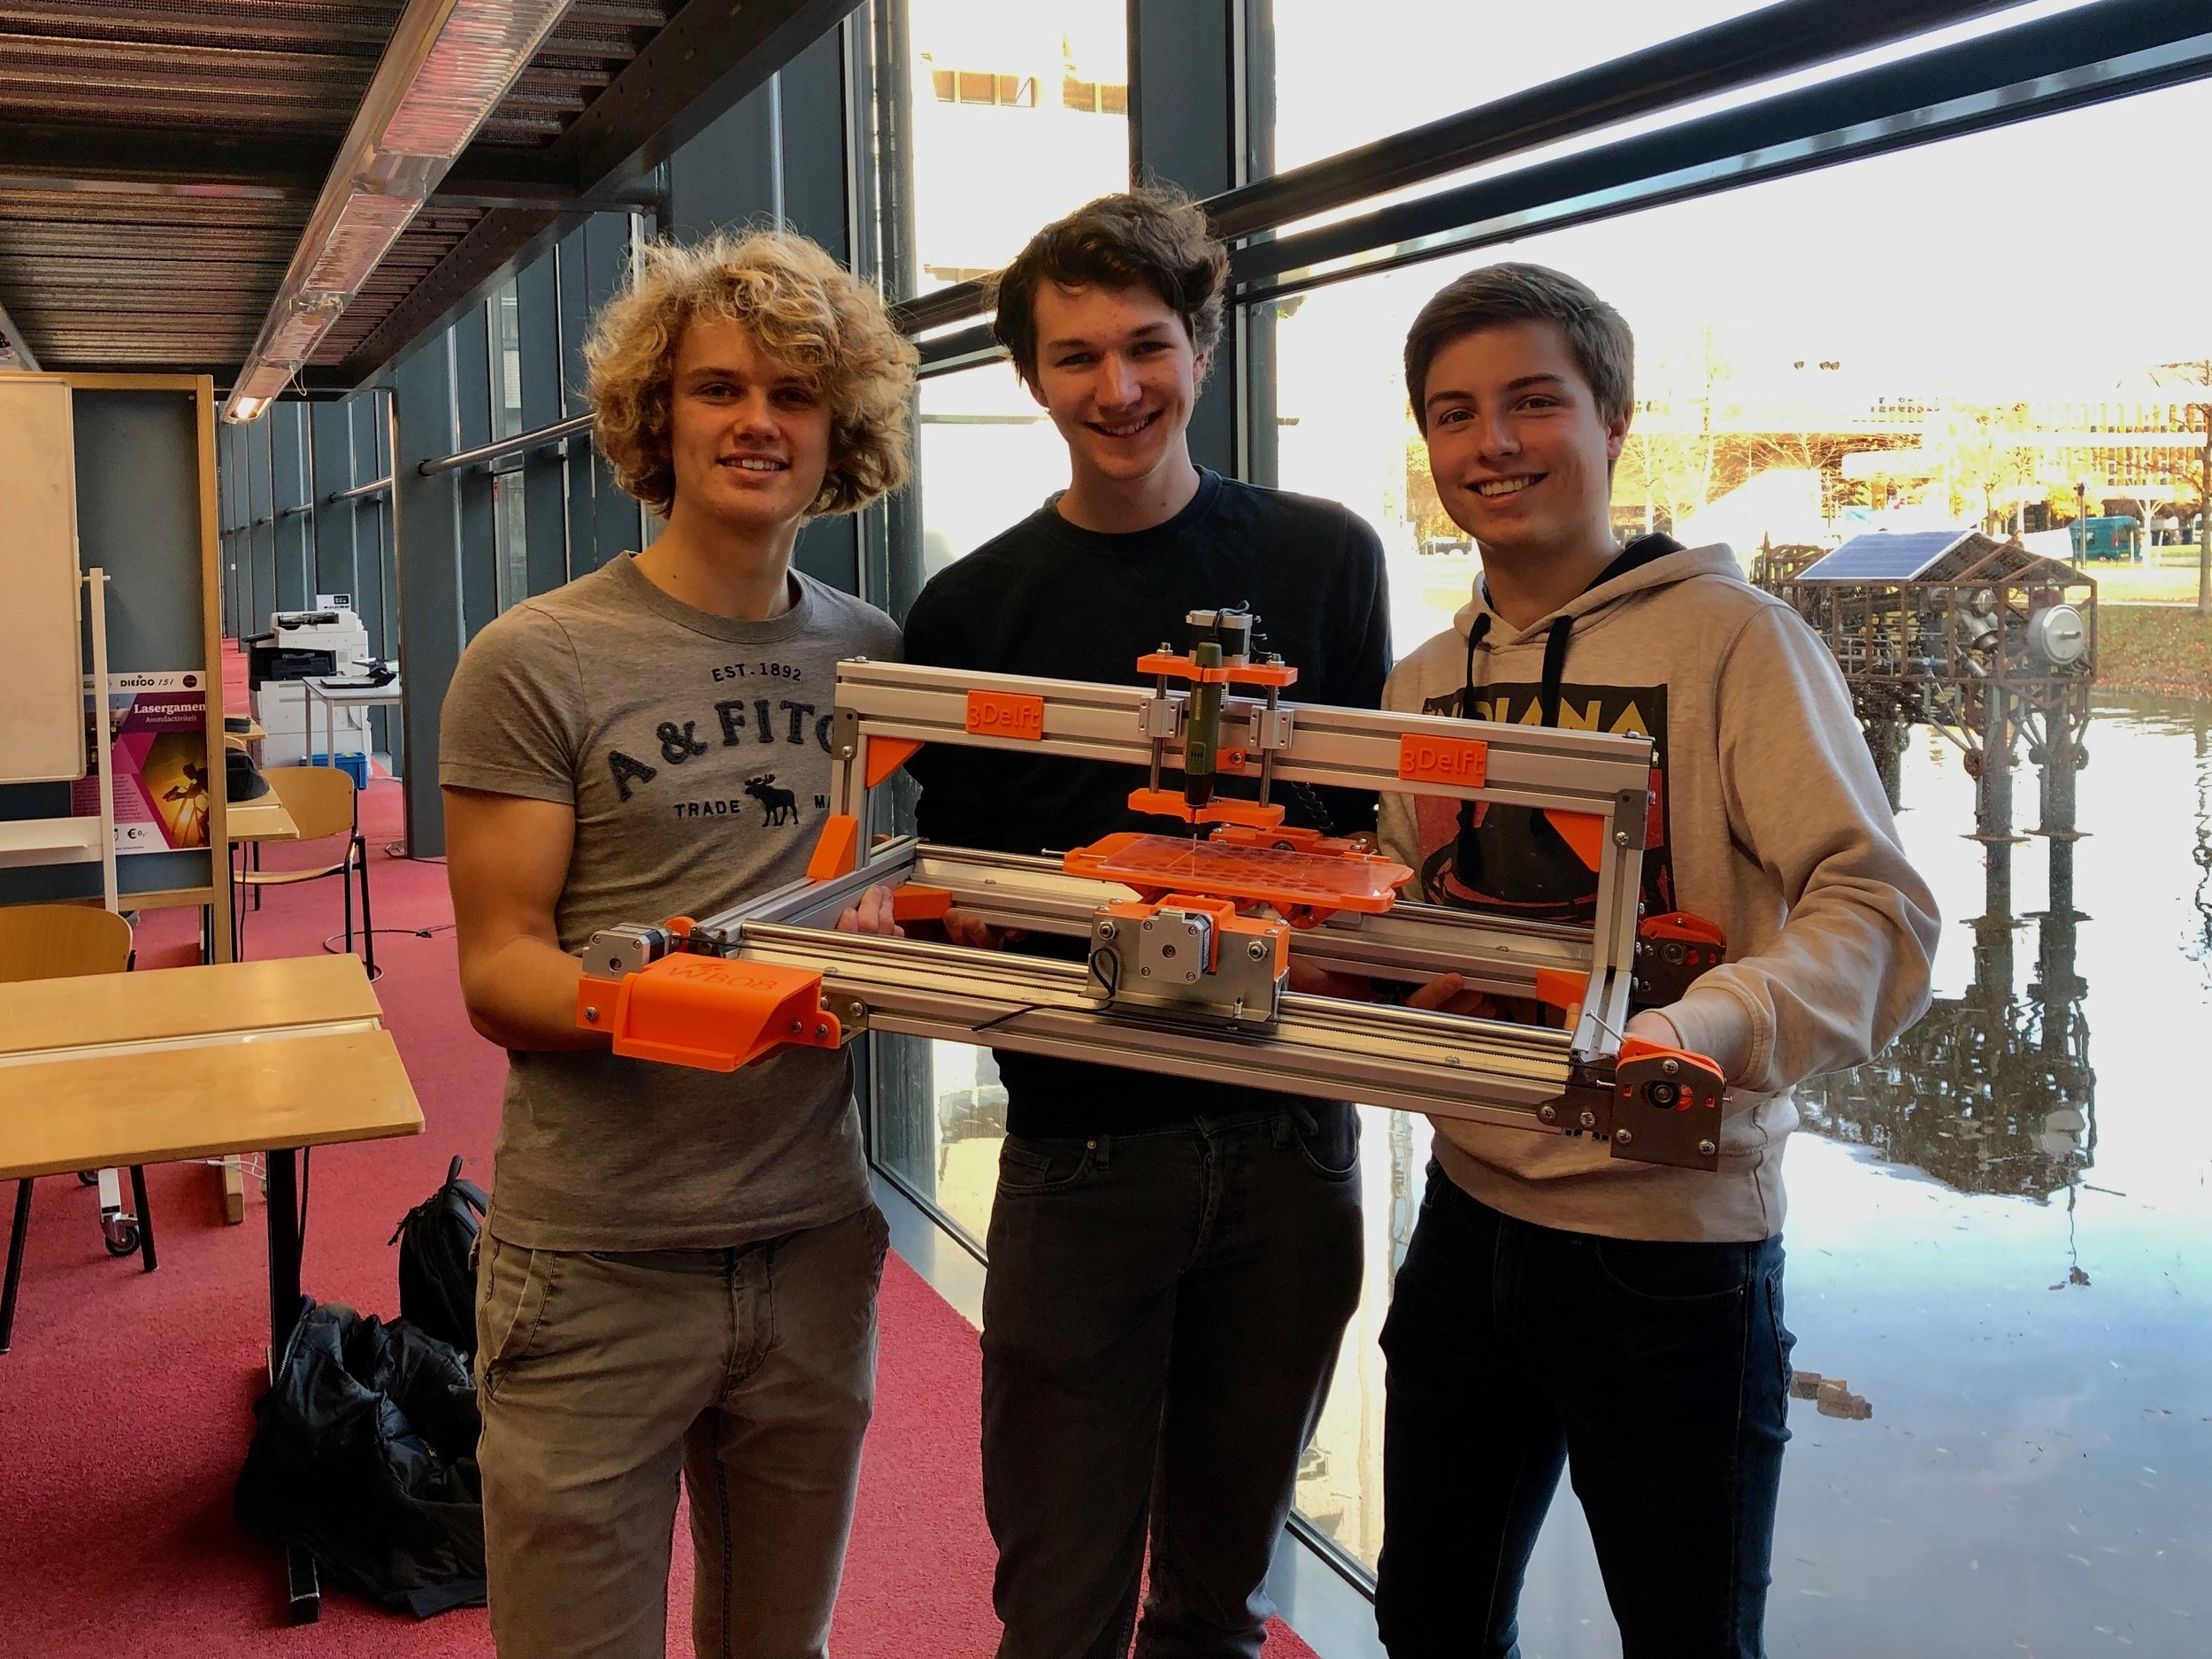 Projectgroup WB08 - The WB08 project group at TU Delft has created a desktop CNC machine that consists of customized 3D printed components. We are proud of their result and we wish them success with the project and the rest of their studies.